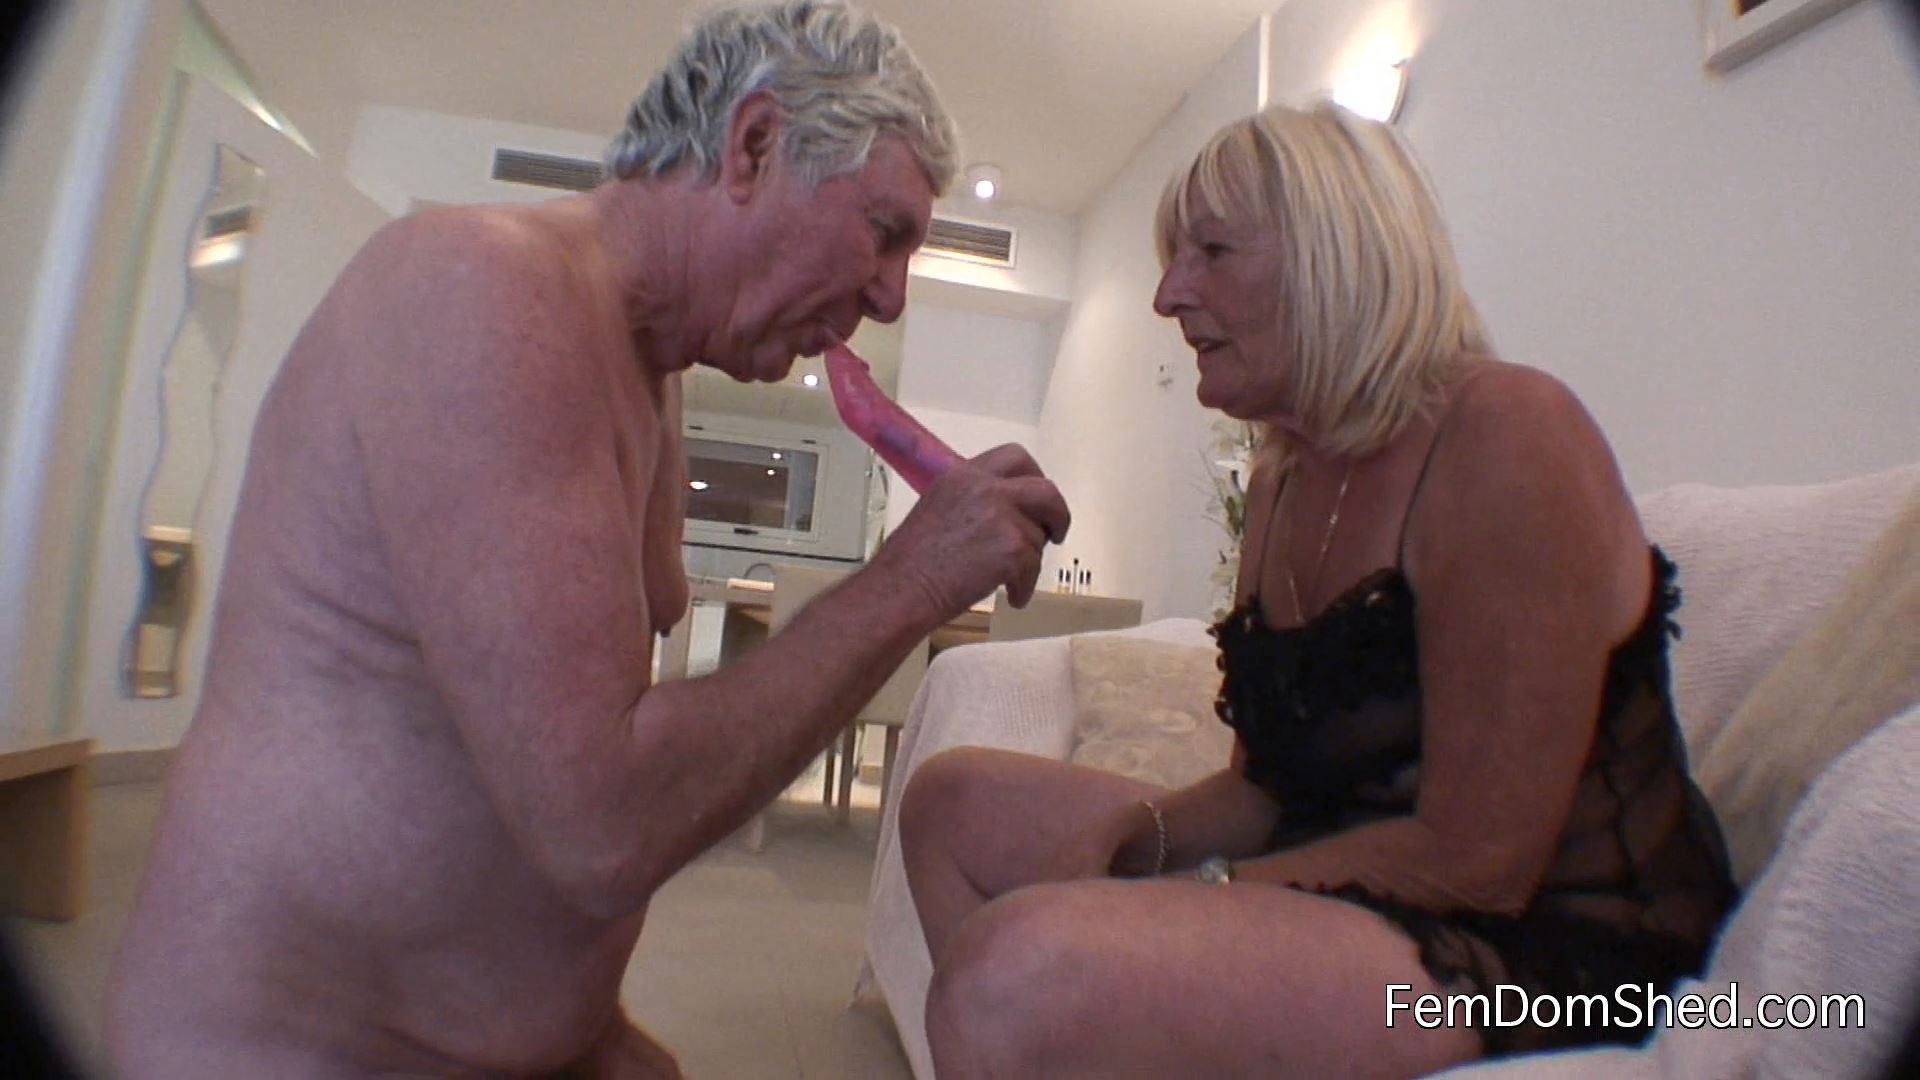 Cuckoldress Diane - Training My Cuckold Husband To Suck My New Lovers Cock - FEMDOMSHED - FULL HD/1080p/MP4